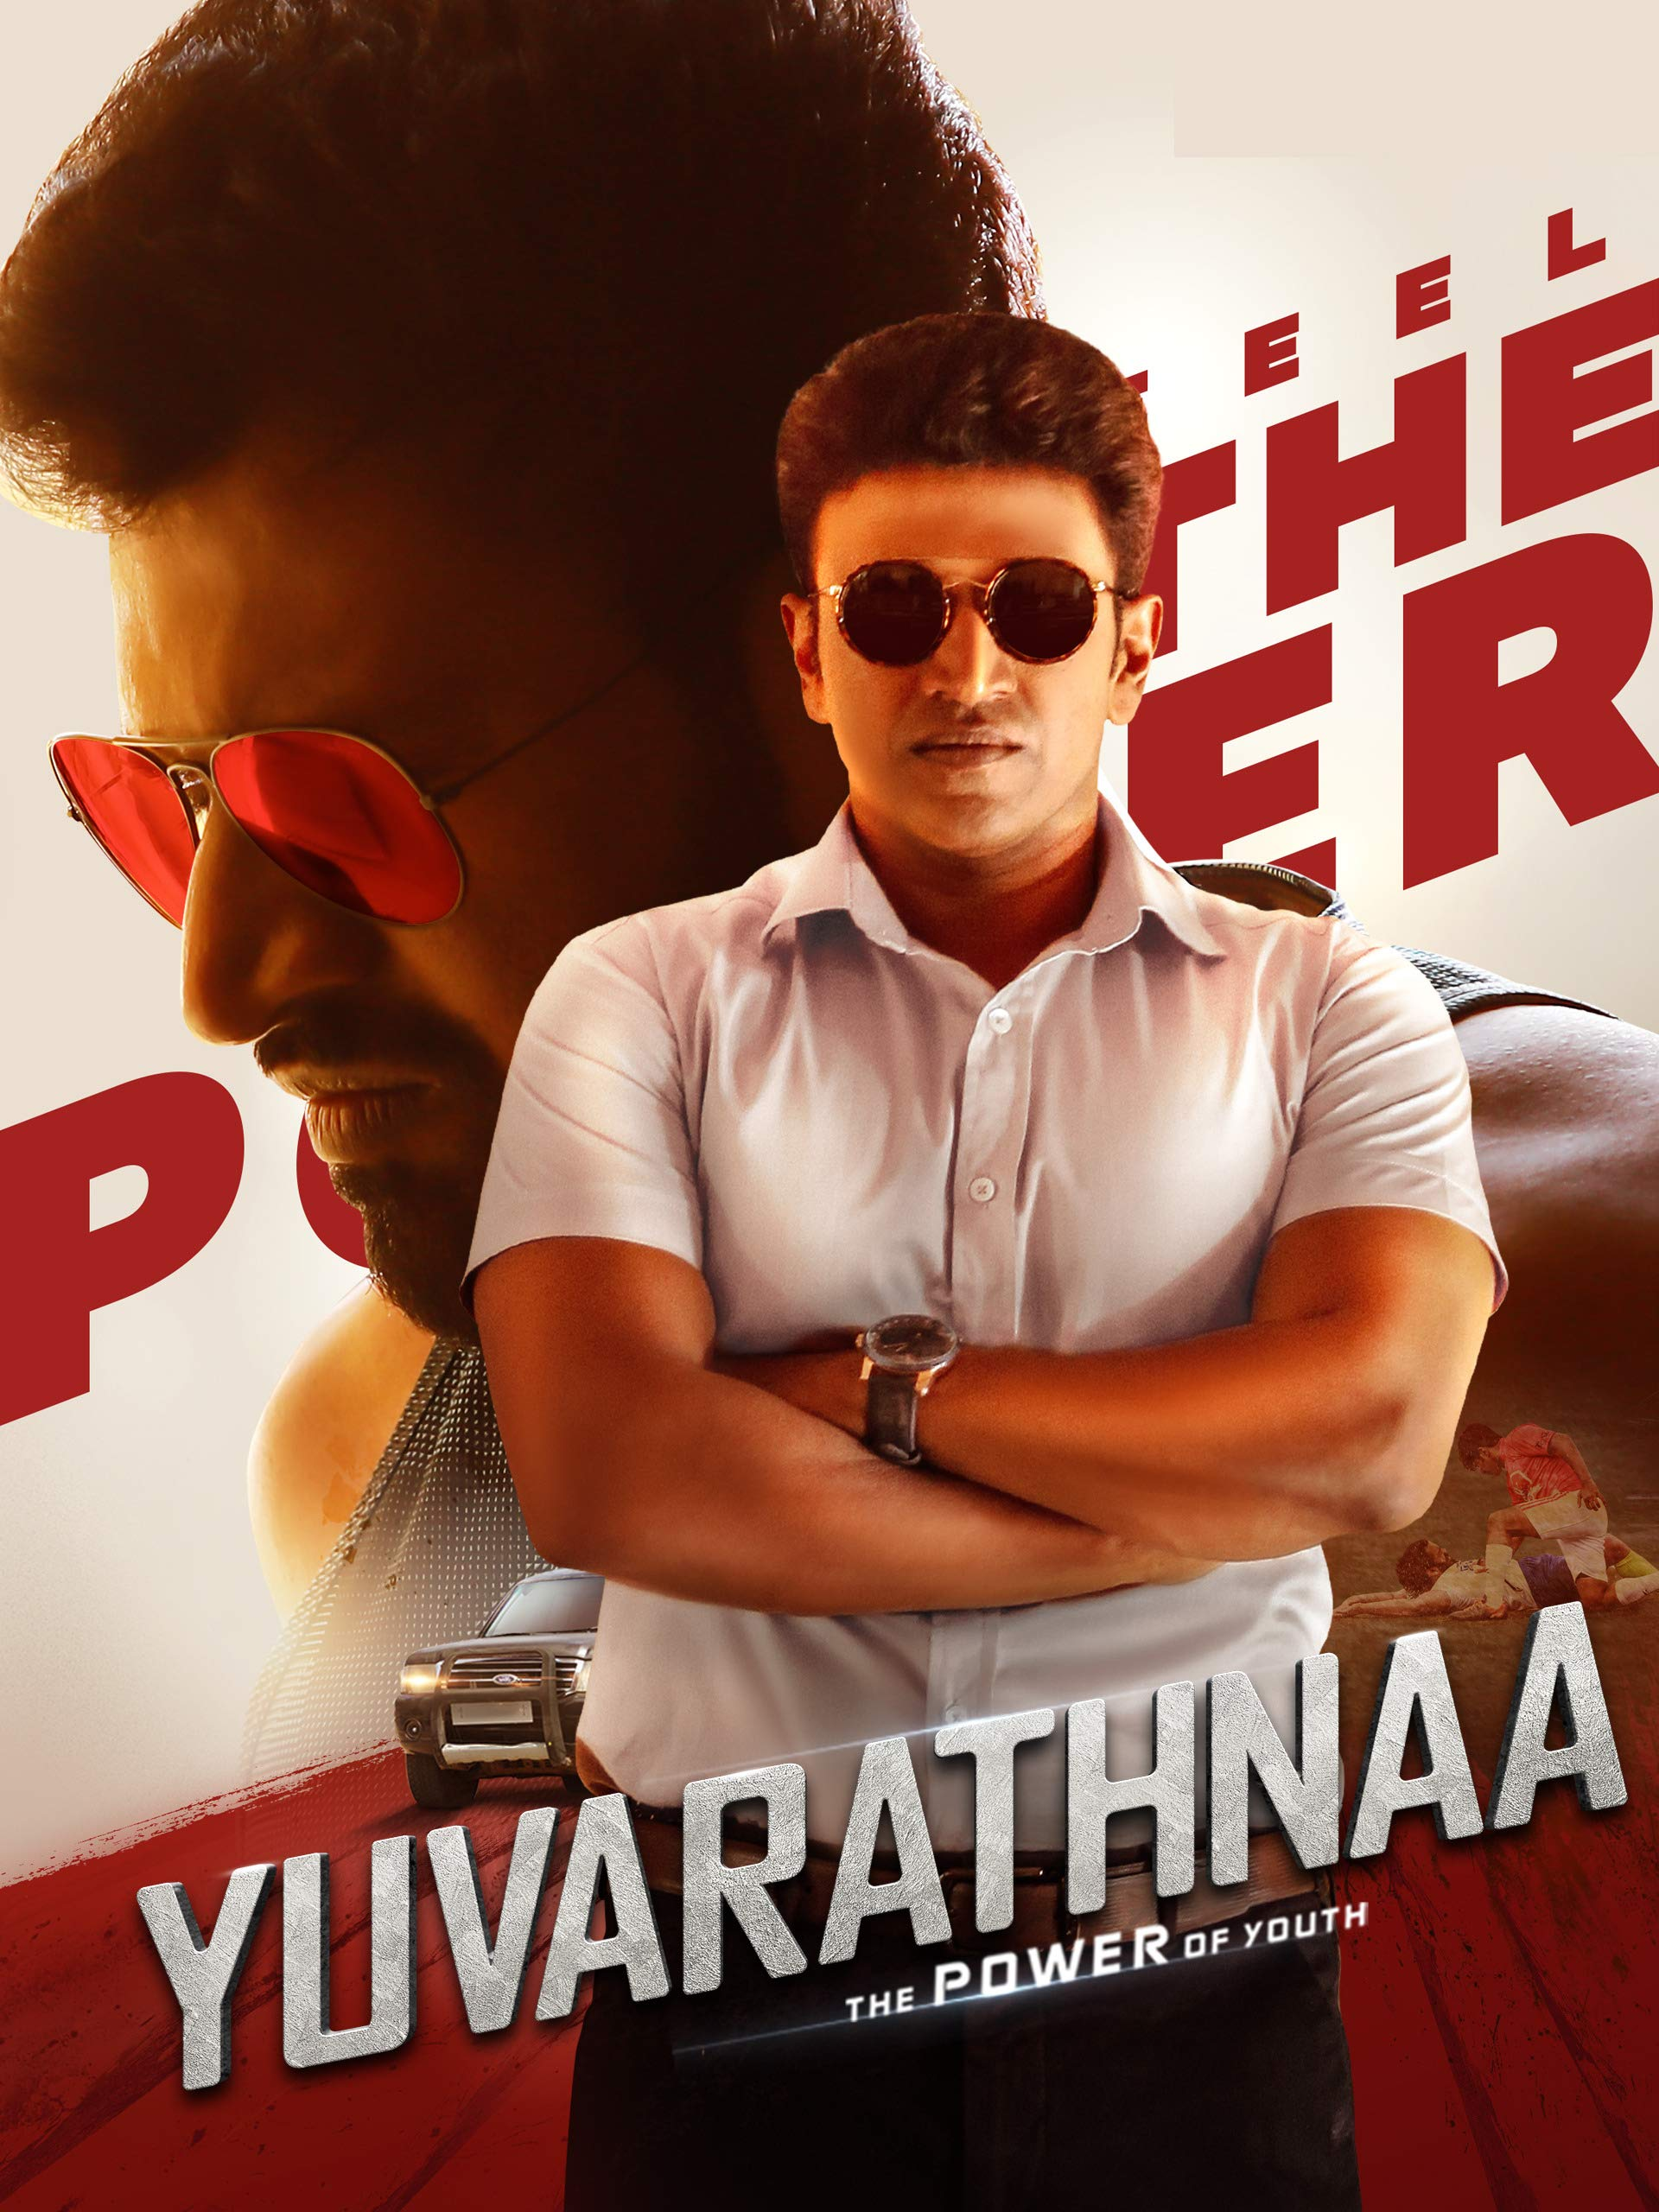 Yuvarathnaa (2021) Hindi Dubbed Movie 720p HDRip AAC